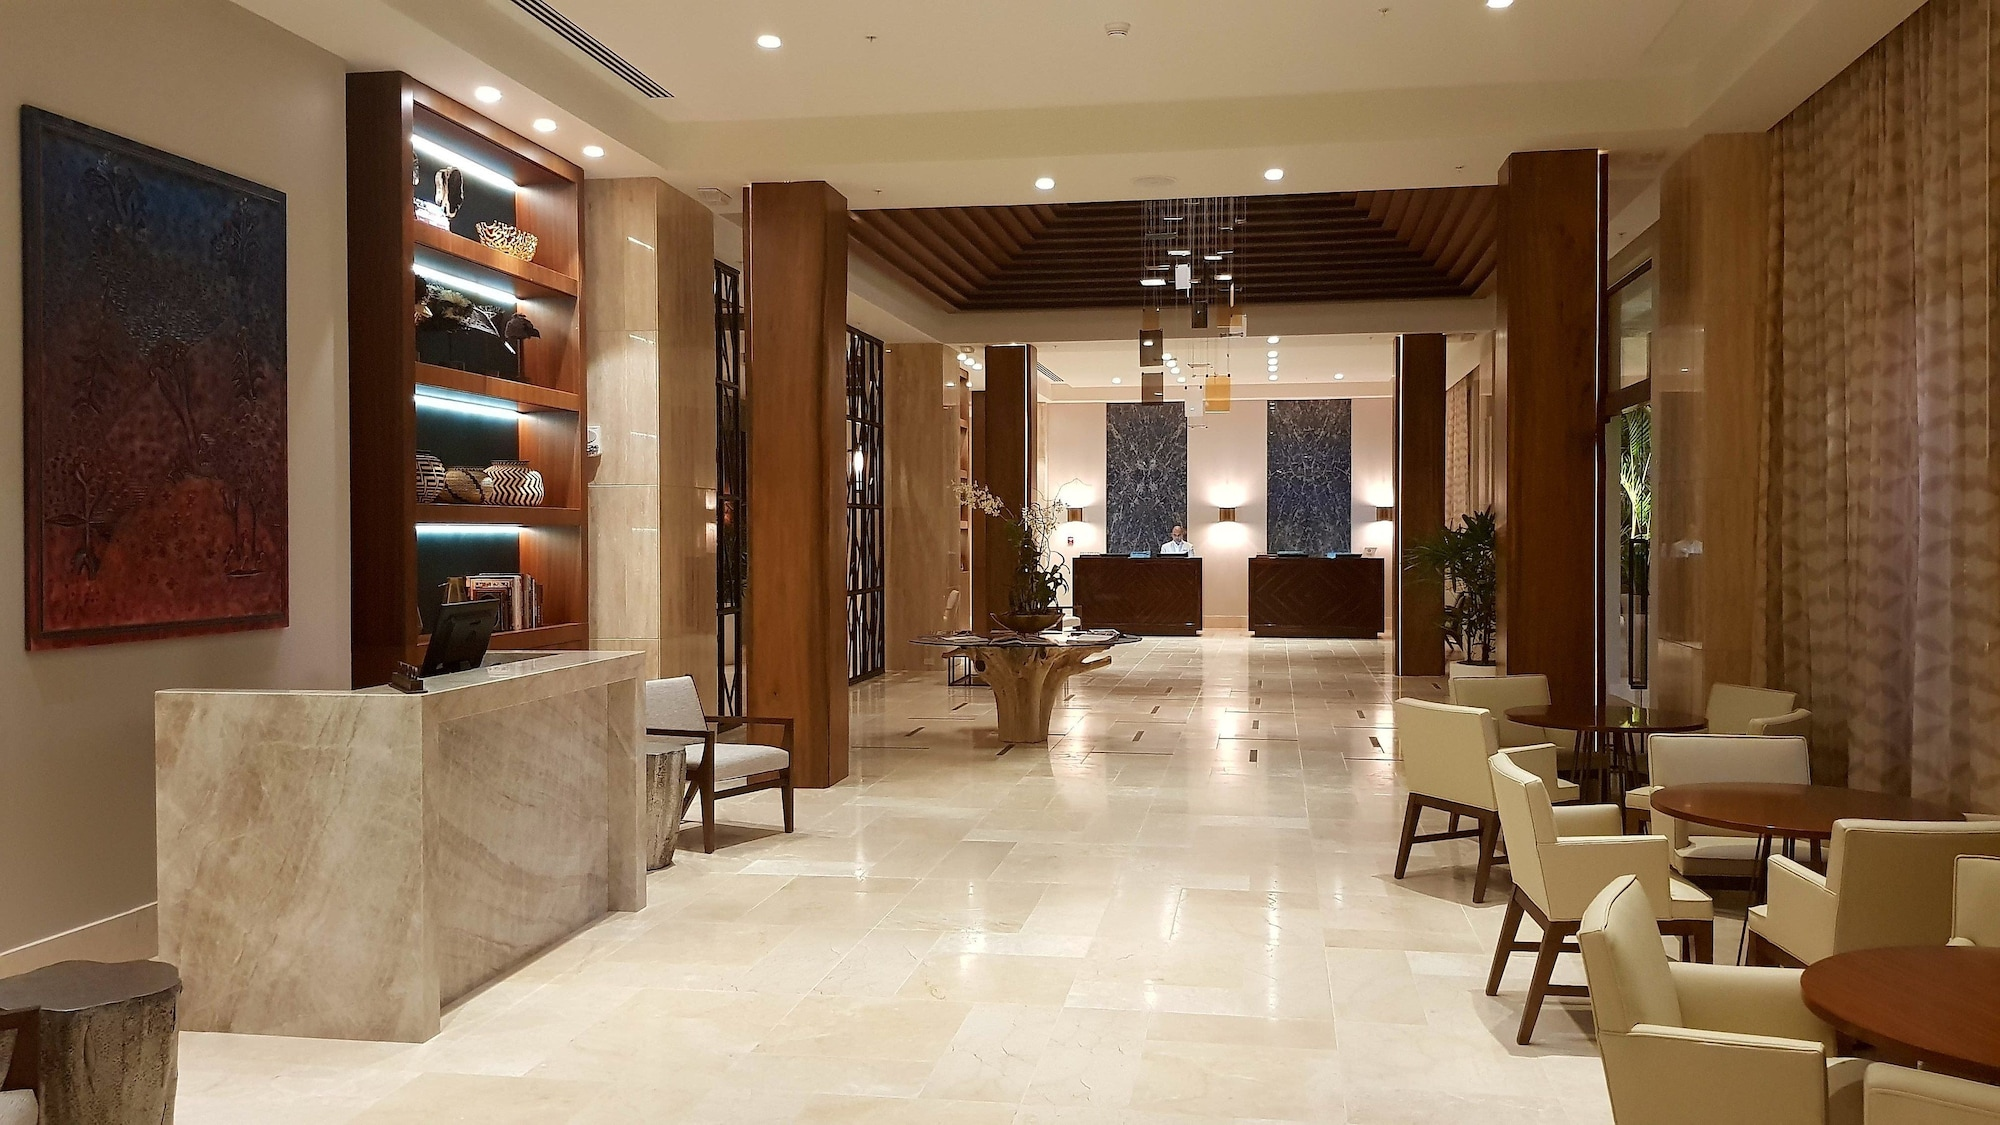 The Santa Maria, A Luxury Collection Hotel & Golf Resort, Panama City, Panamá